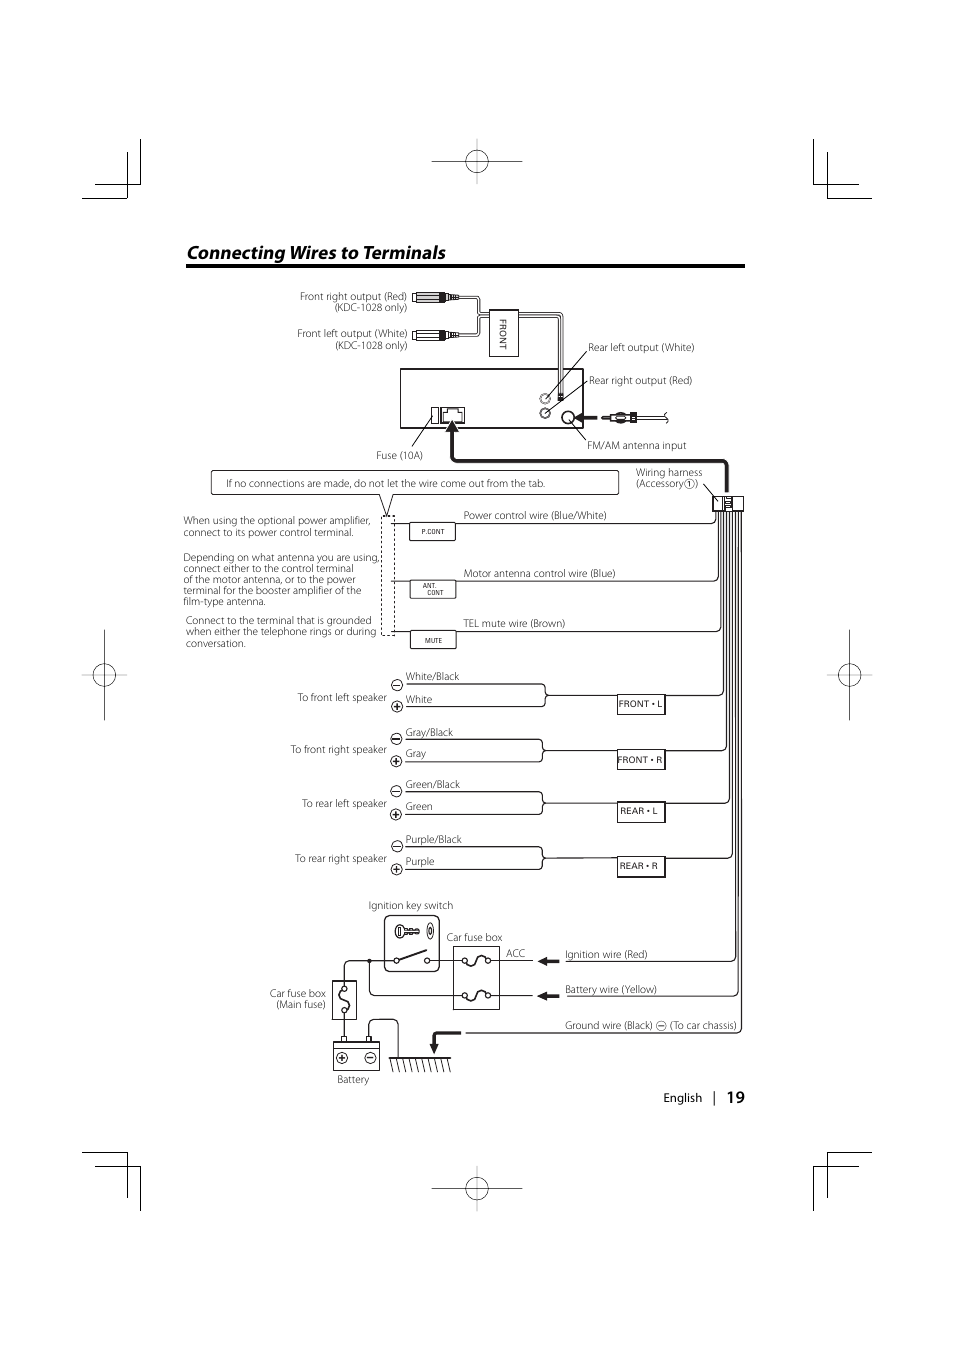 kenwood kdc 128cr page19 kenwood kdc 2019 wiring diagram kenwood wiring diagrams collection kenwood ddx512 wiring diagram at couponss.co